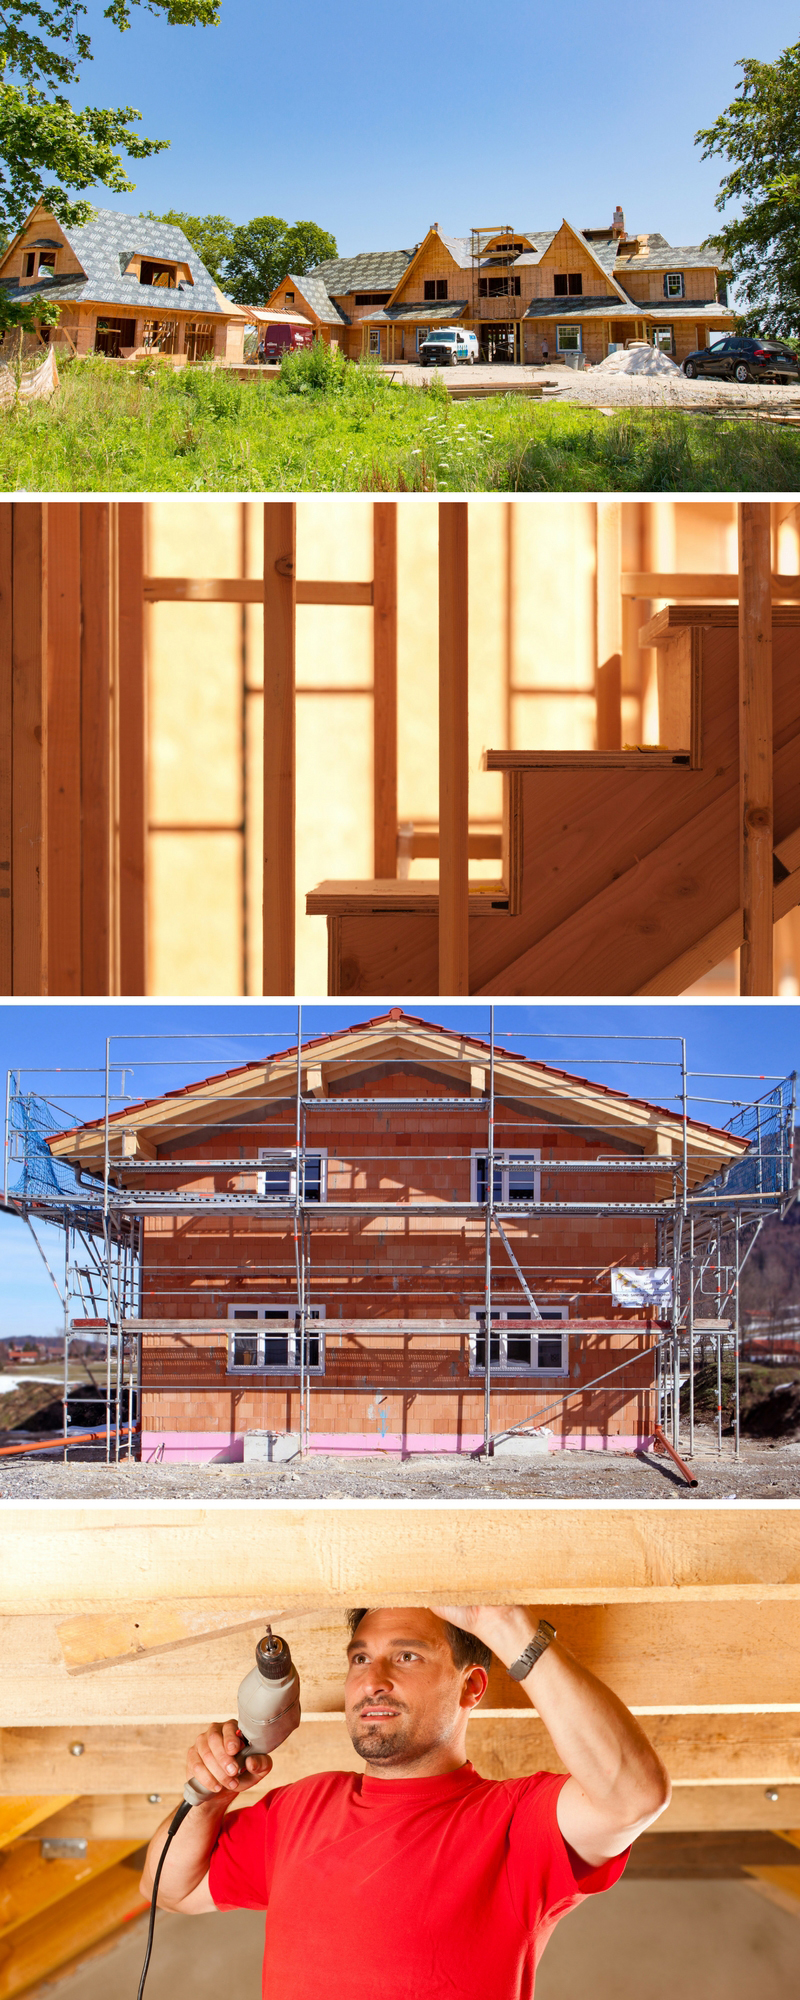 New home construction insurance daigle travers insurance for New home construction insurance